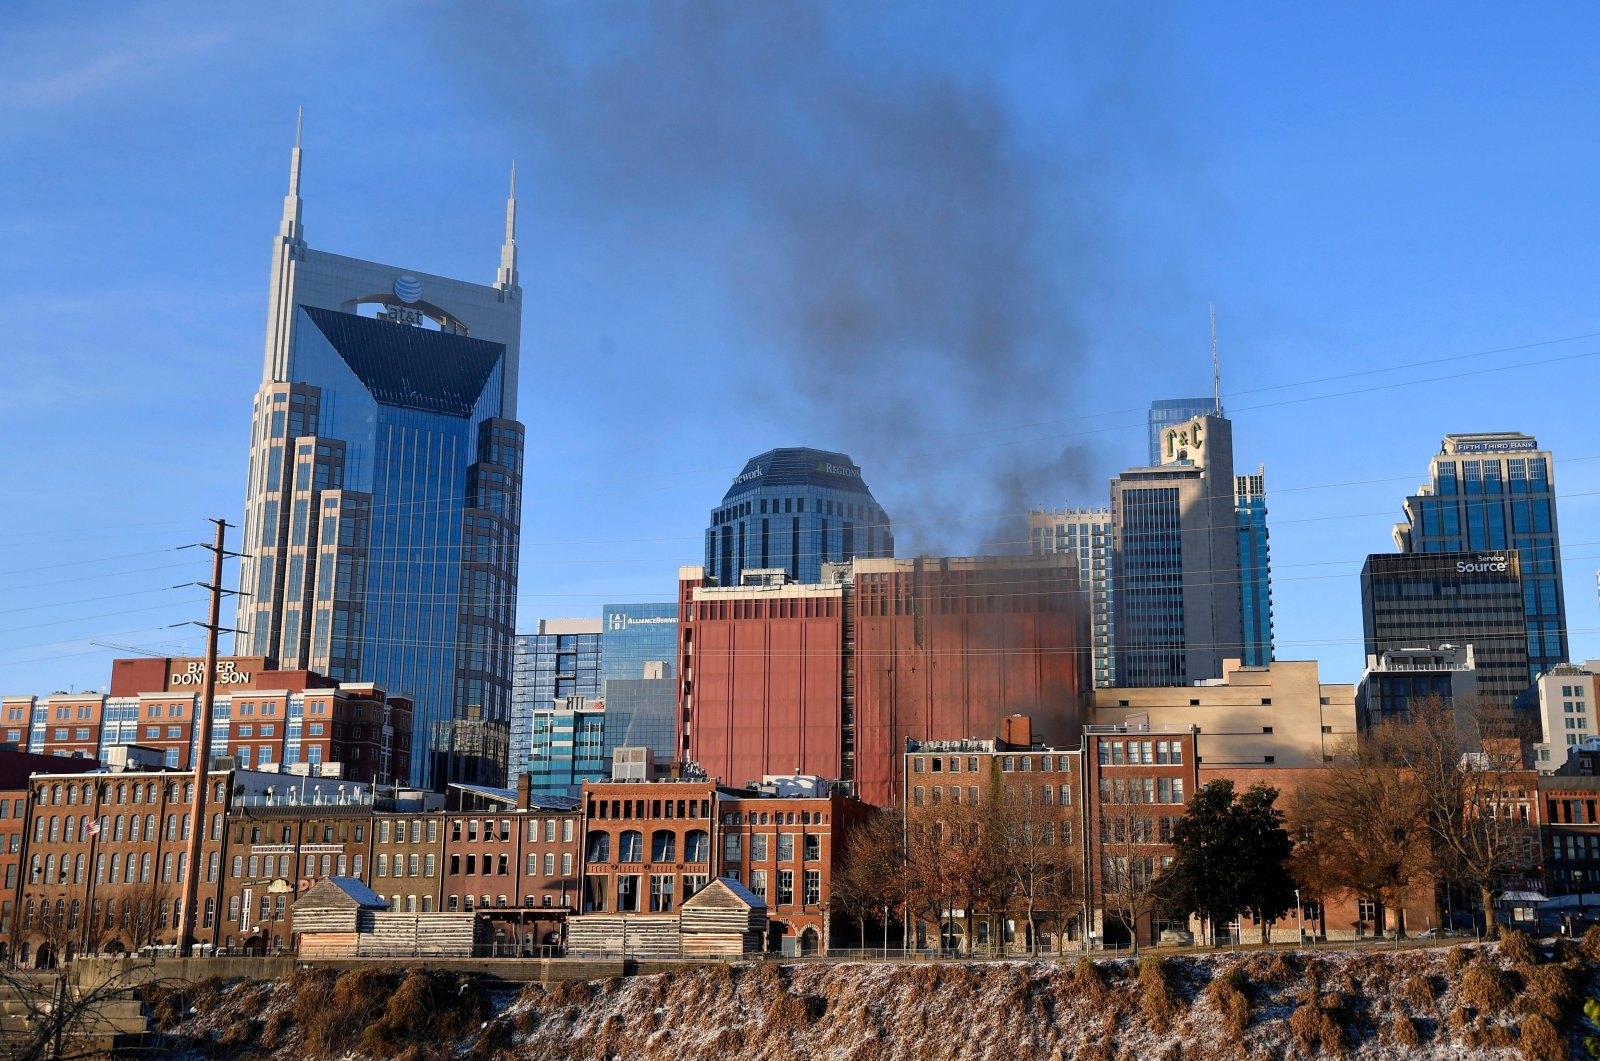 Smoke billows from the site of an explosion in the area of Second and Commerce in Nashville, Tennessee, U.S., Dec. 25, 2020. (Andrew Nelles/Tennessean.com/USA Today Network via Reuters)